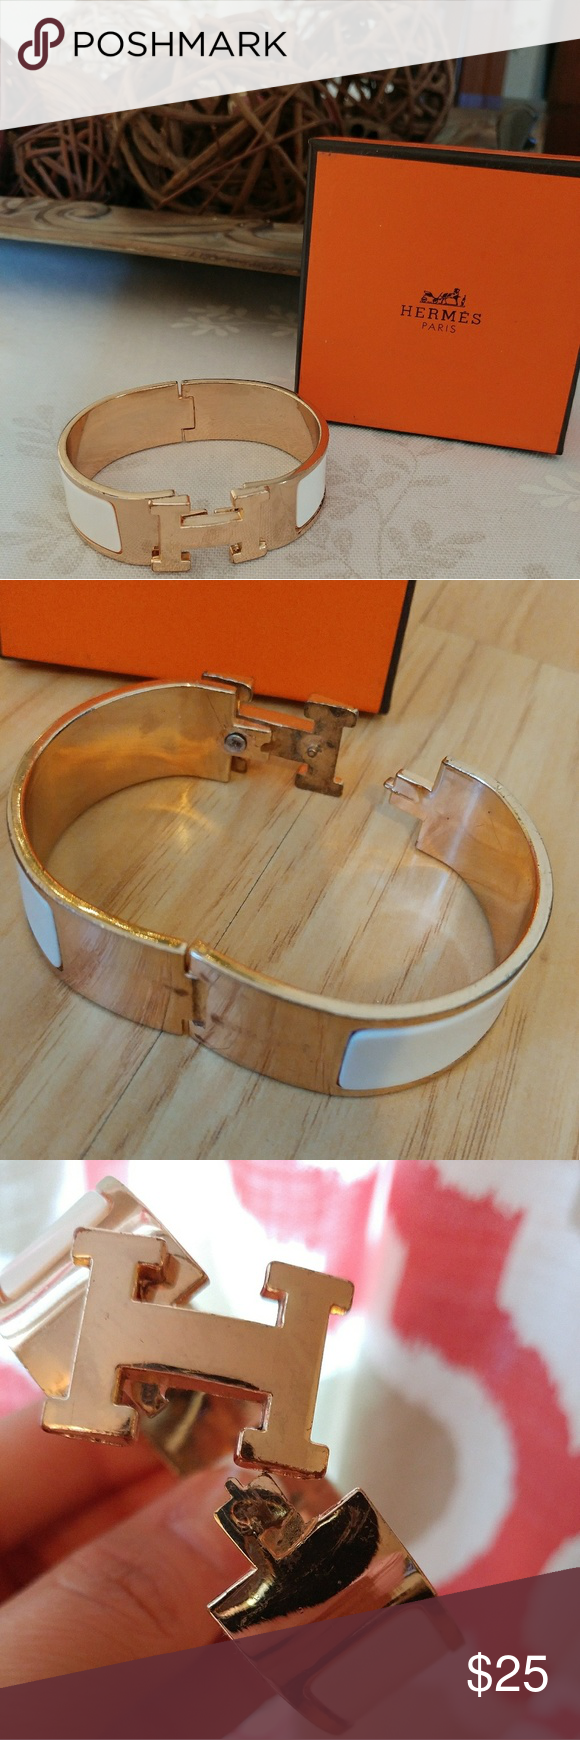 ??Clic Clac H Bracelet Very stylish bracelet that favors Hermes. VERY worn around some edges and the clasp needs to be tightened but still looks great on. This is not an authentic bracelet and again is worn but still cute ?????? Ami Jewelry Bracelets